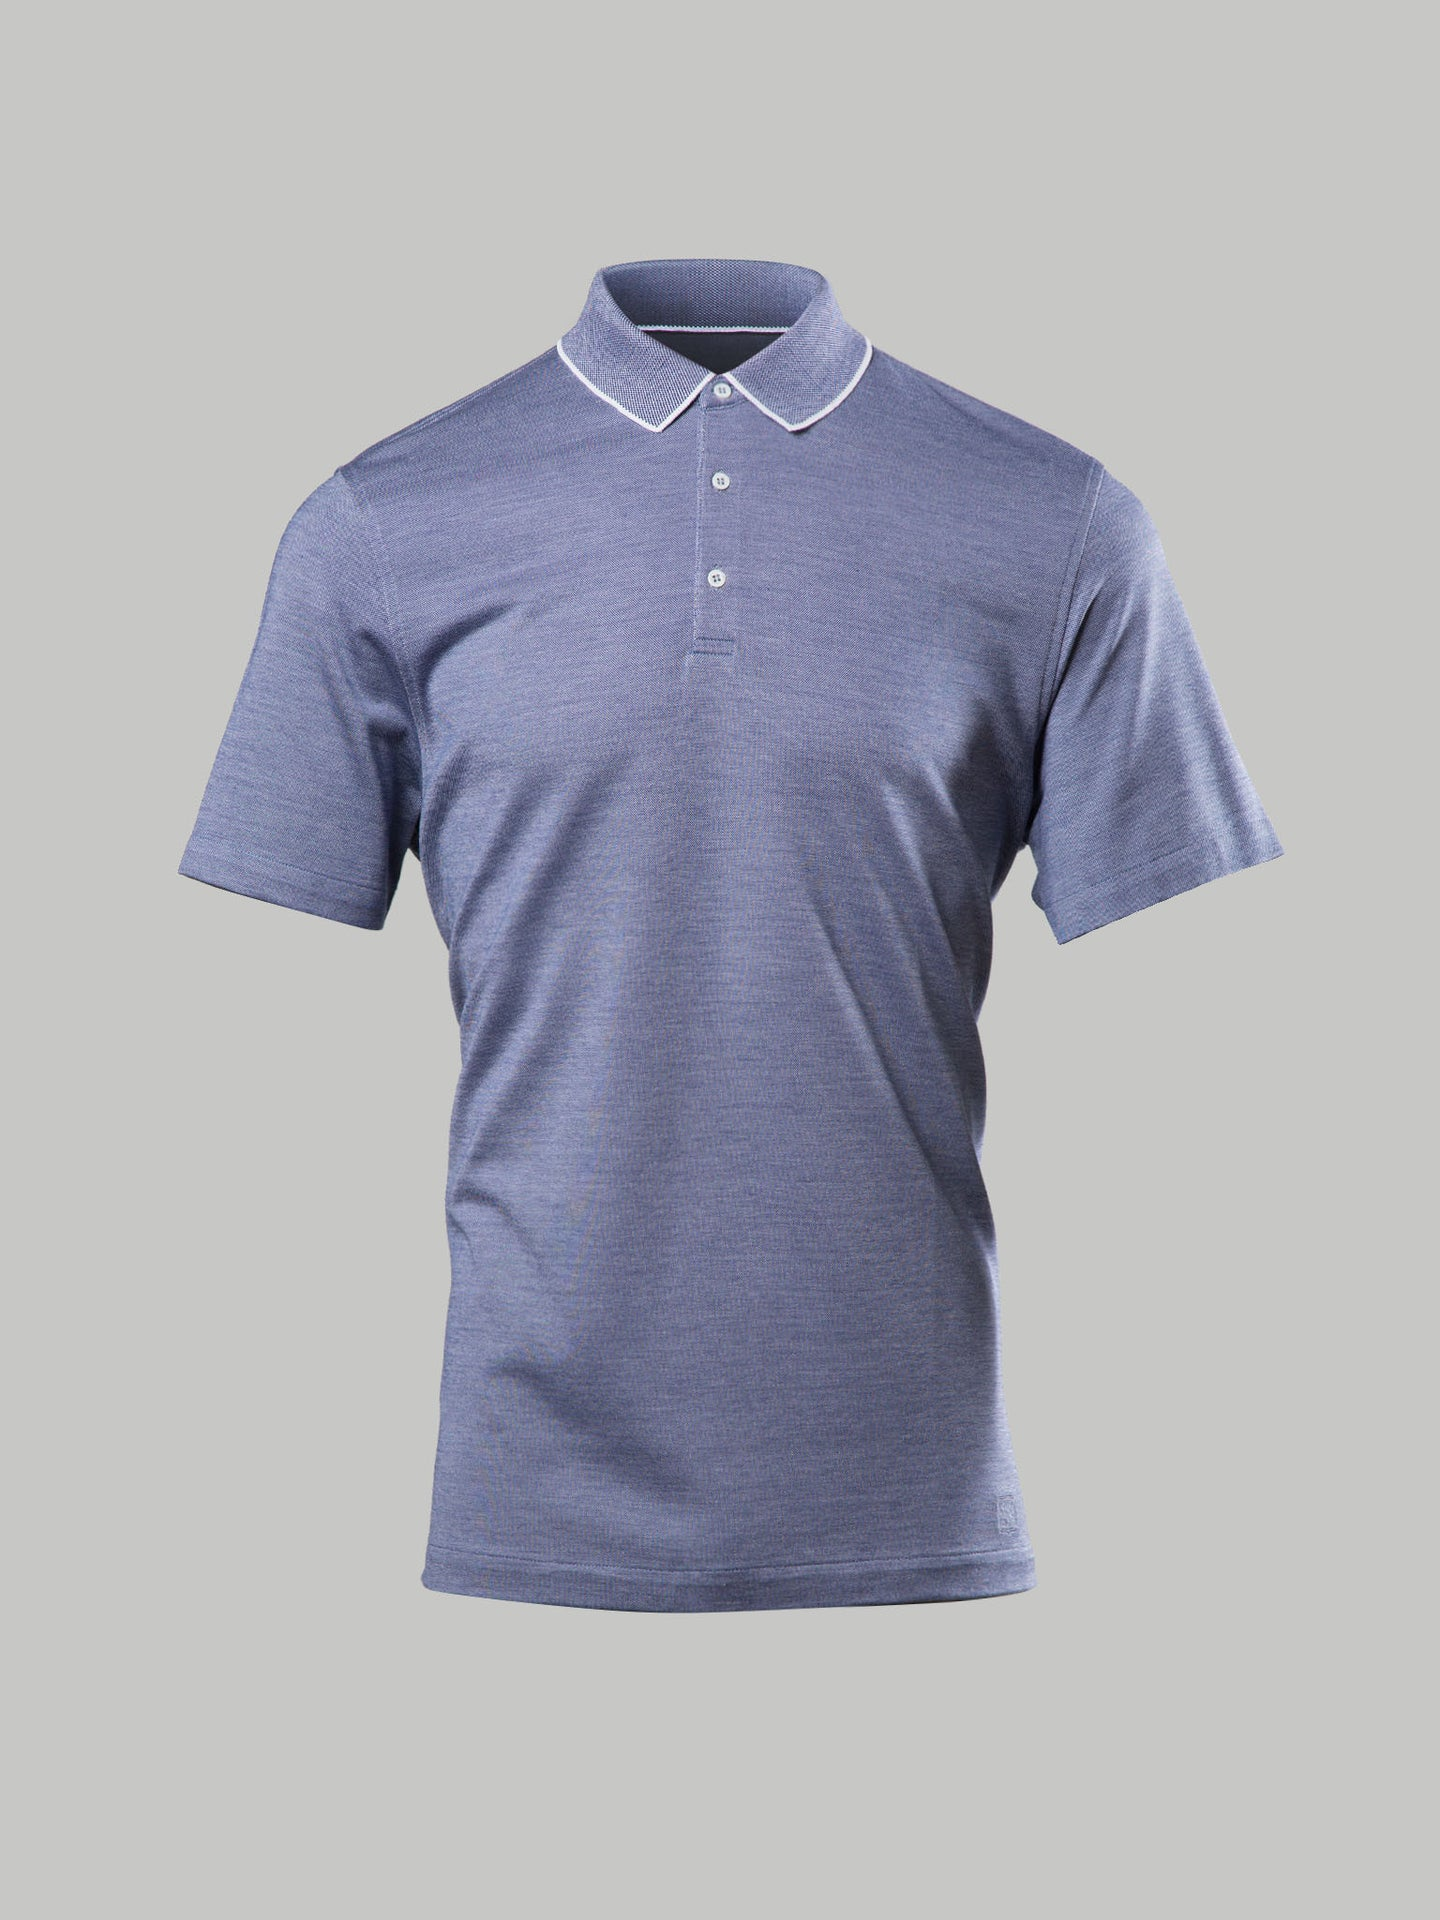 Corneliani Contrast Collar Polo (Navy)